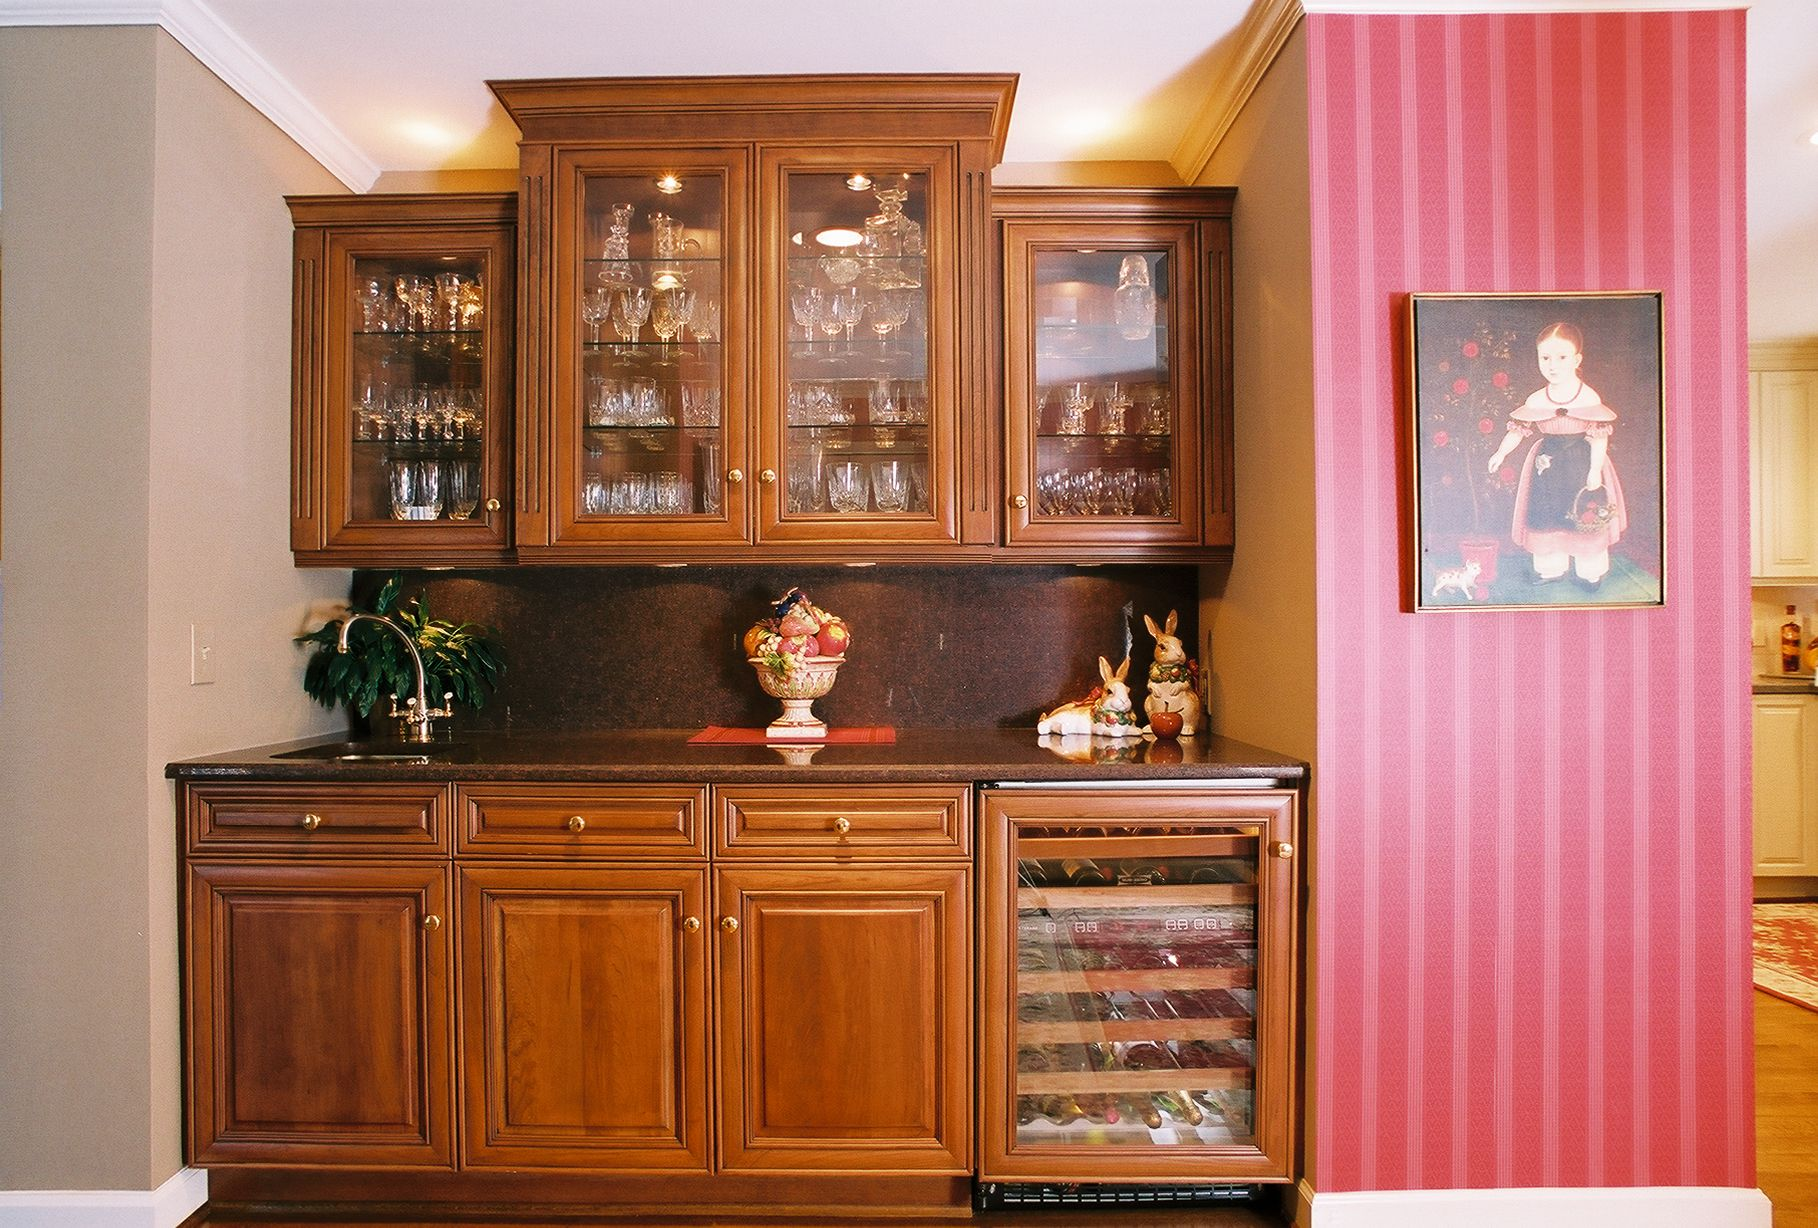 Built in bar for the home built in bar kitchen - Built in bar cabinets ...